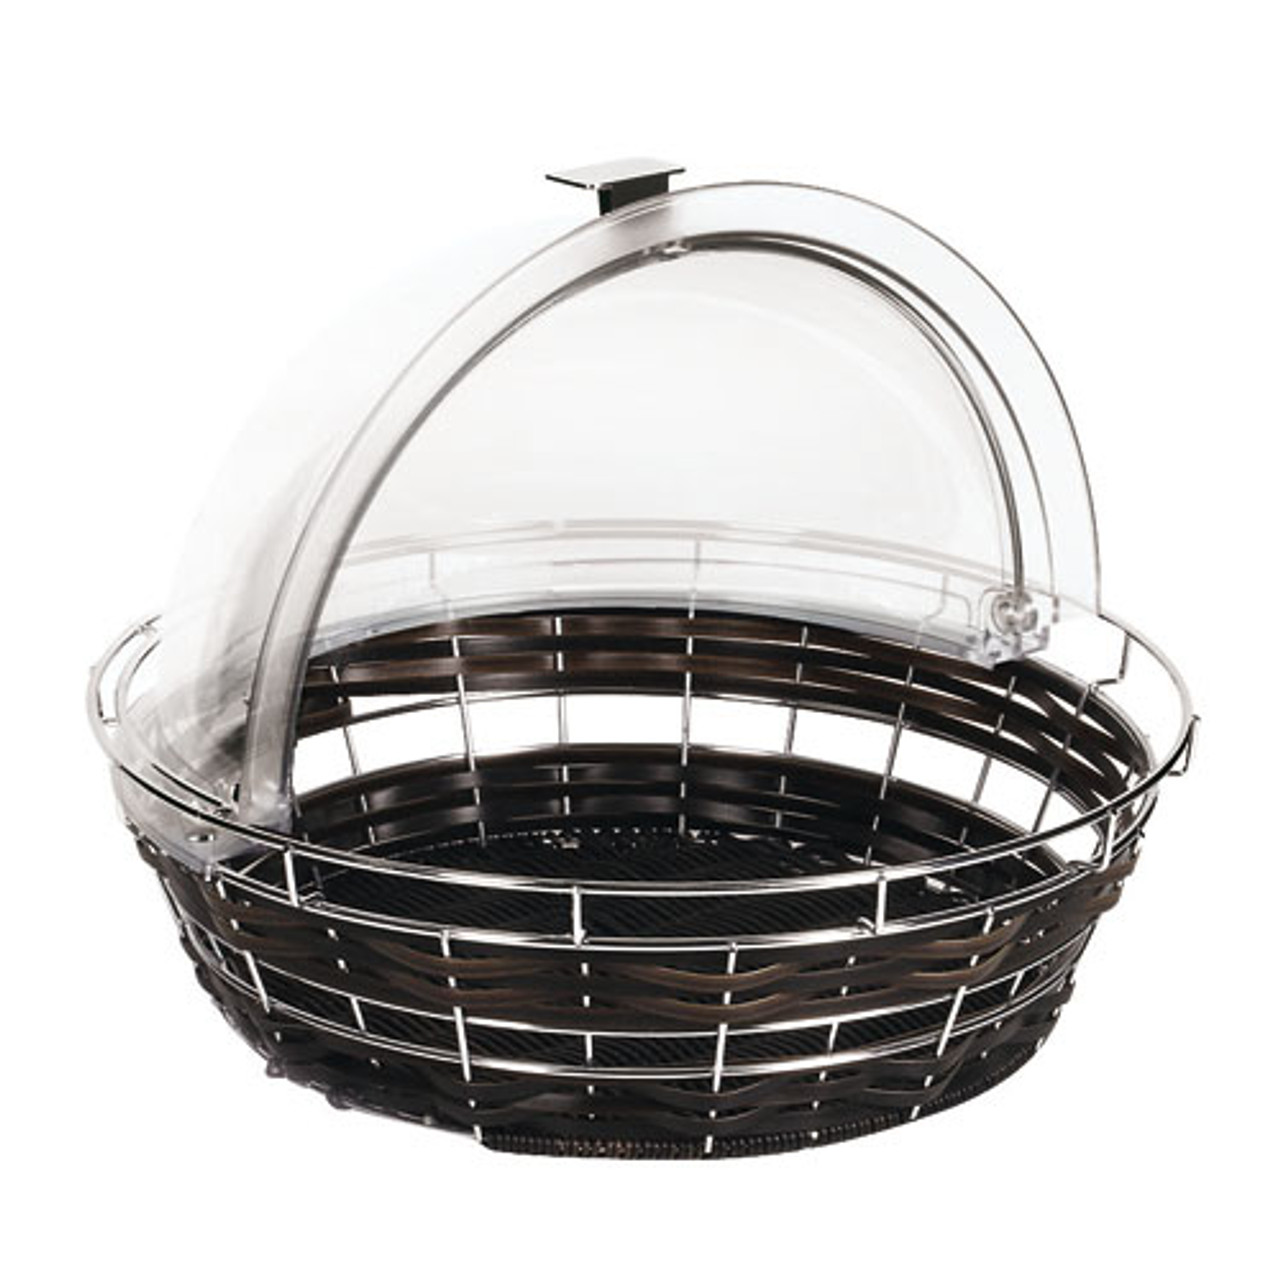 Black Round Polyrattan Bread Basket - cover not included, L 13.875 x W 13.875 x H 7.875